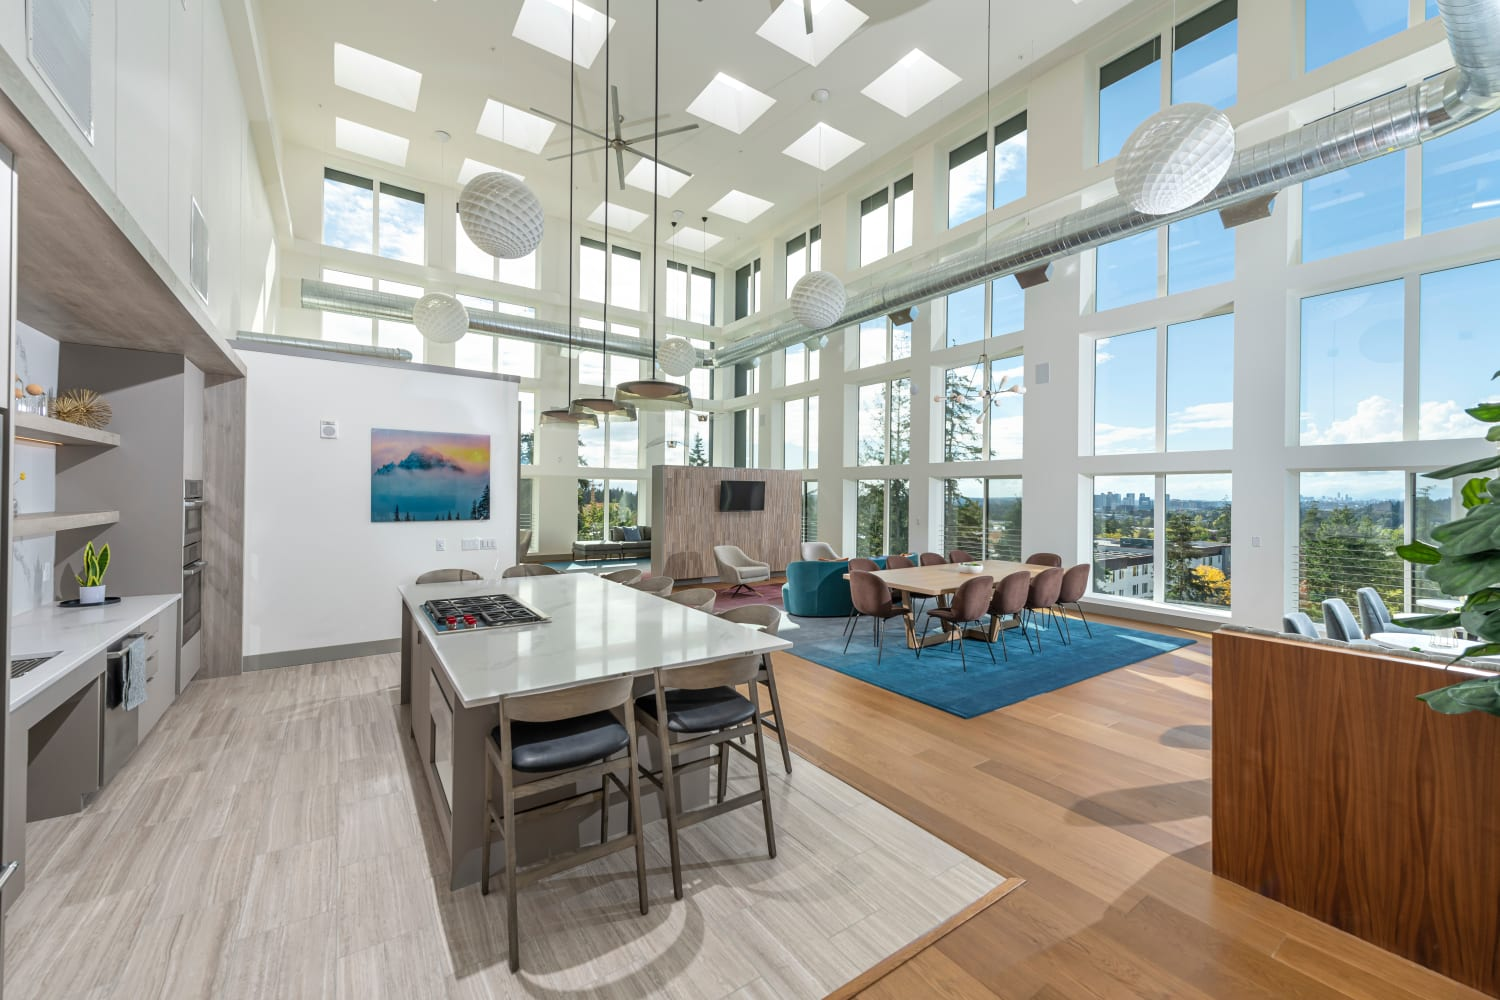 Resident lounge with kitchen and media area at Nightingale in Redmond, Washington